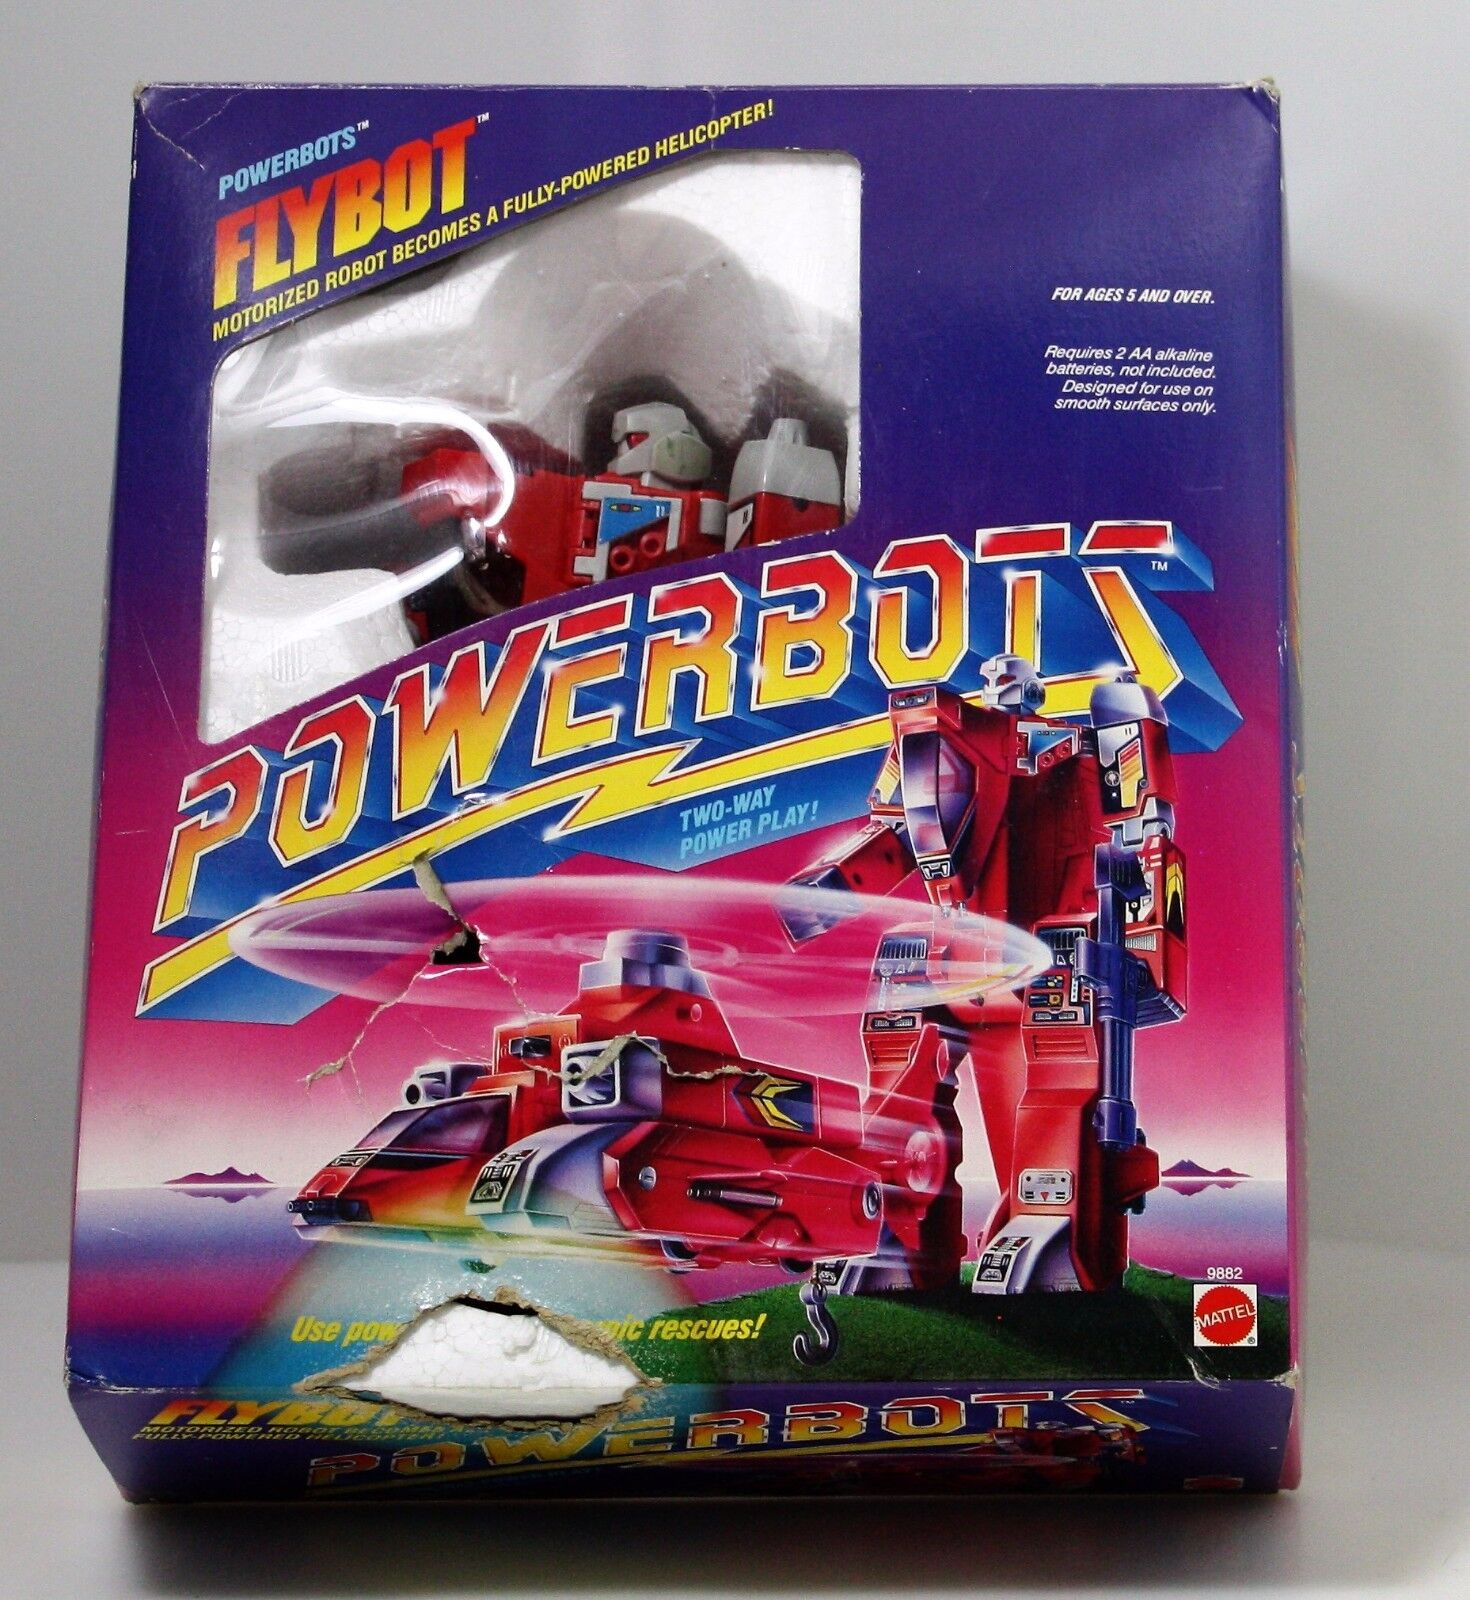 In Box Mattel Powerbots Transforming 1986 Flybot Helicopter